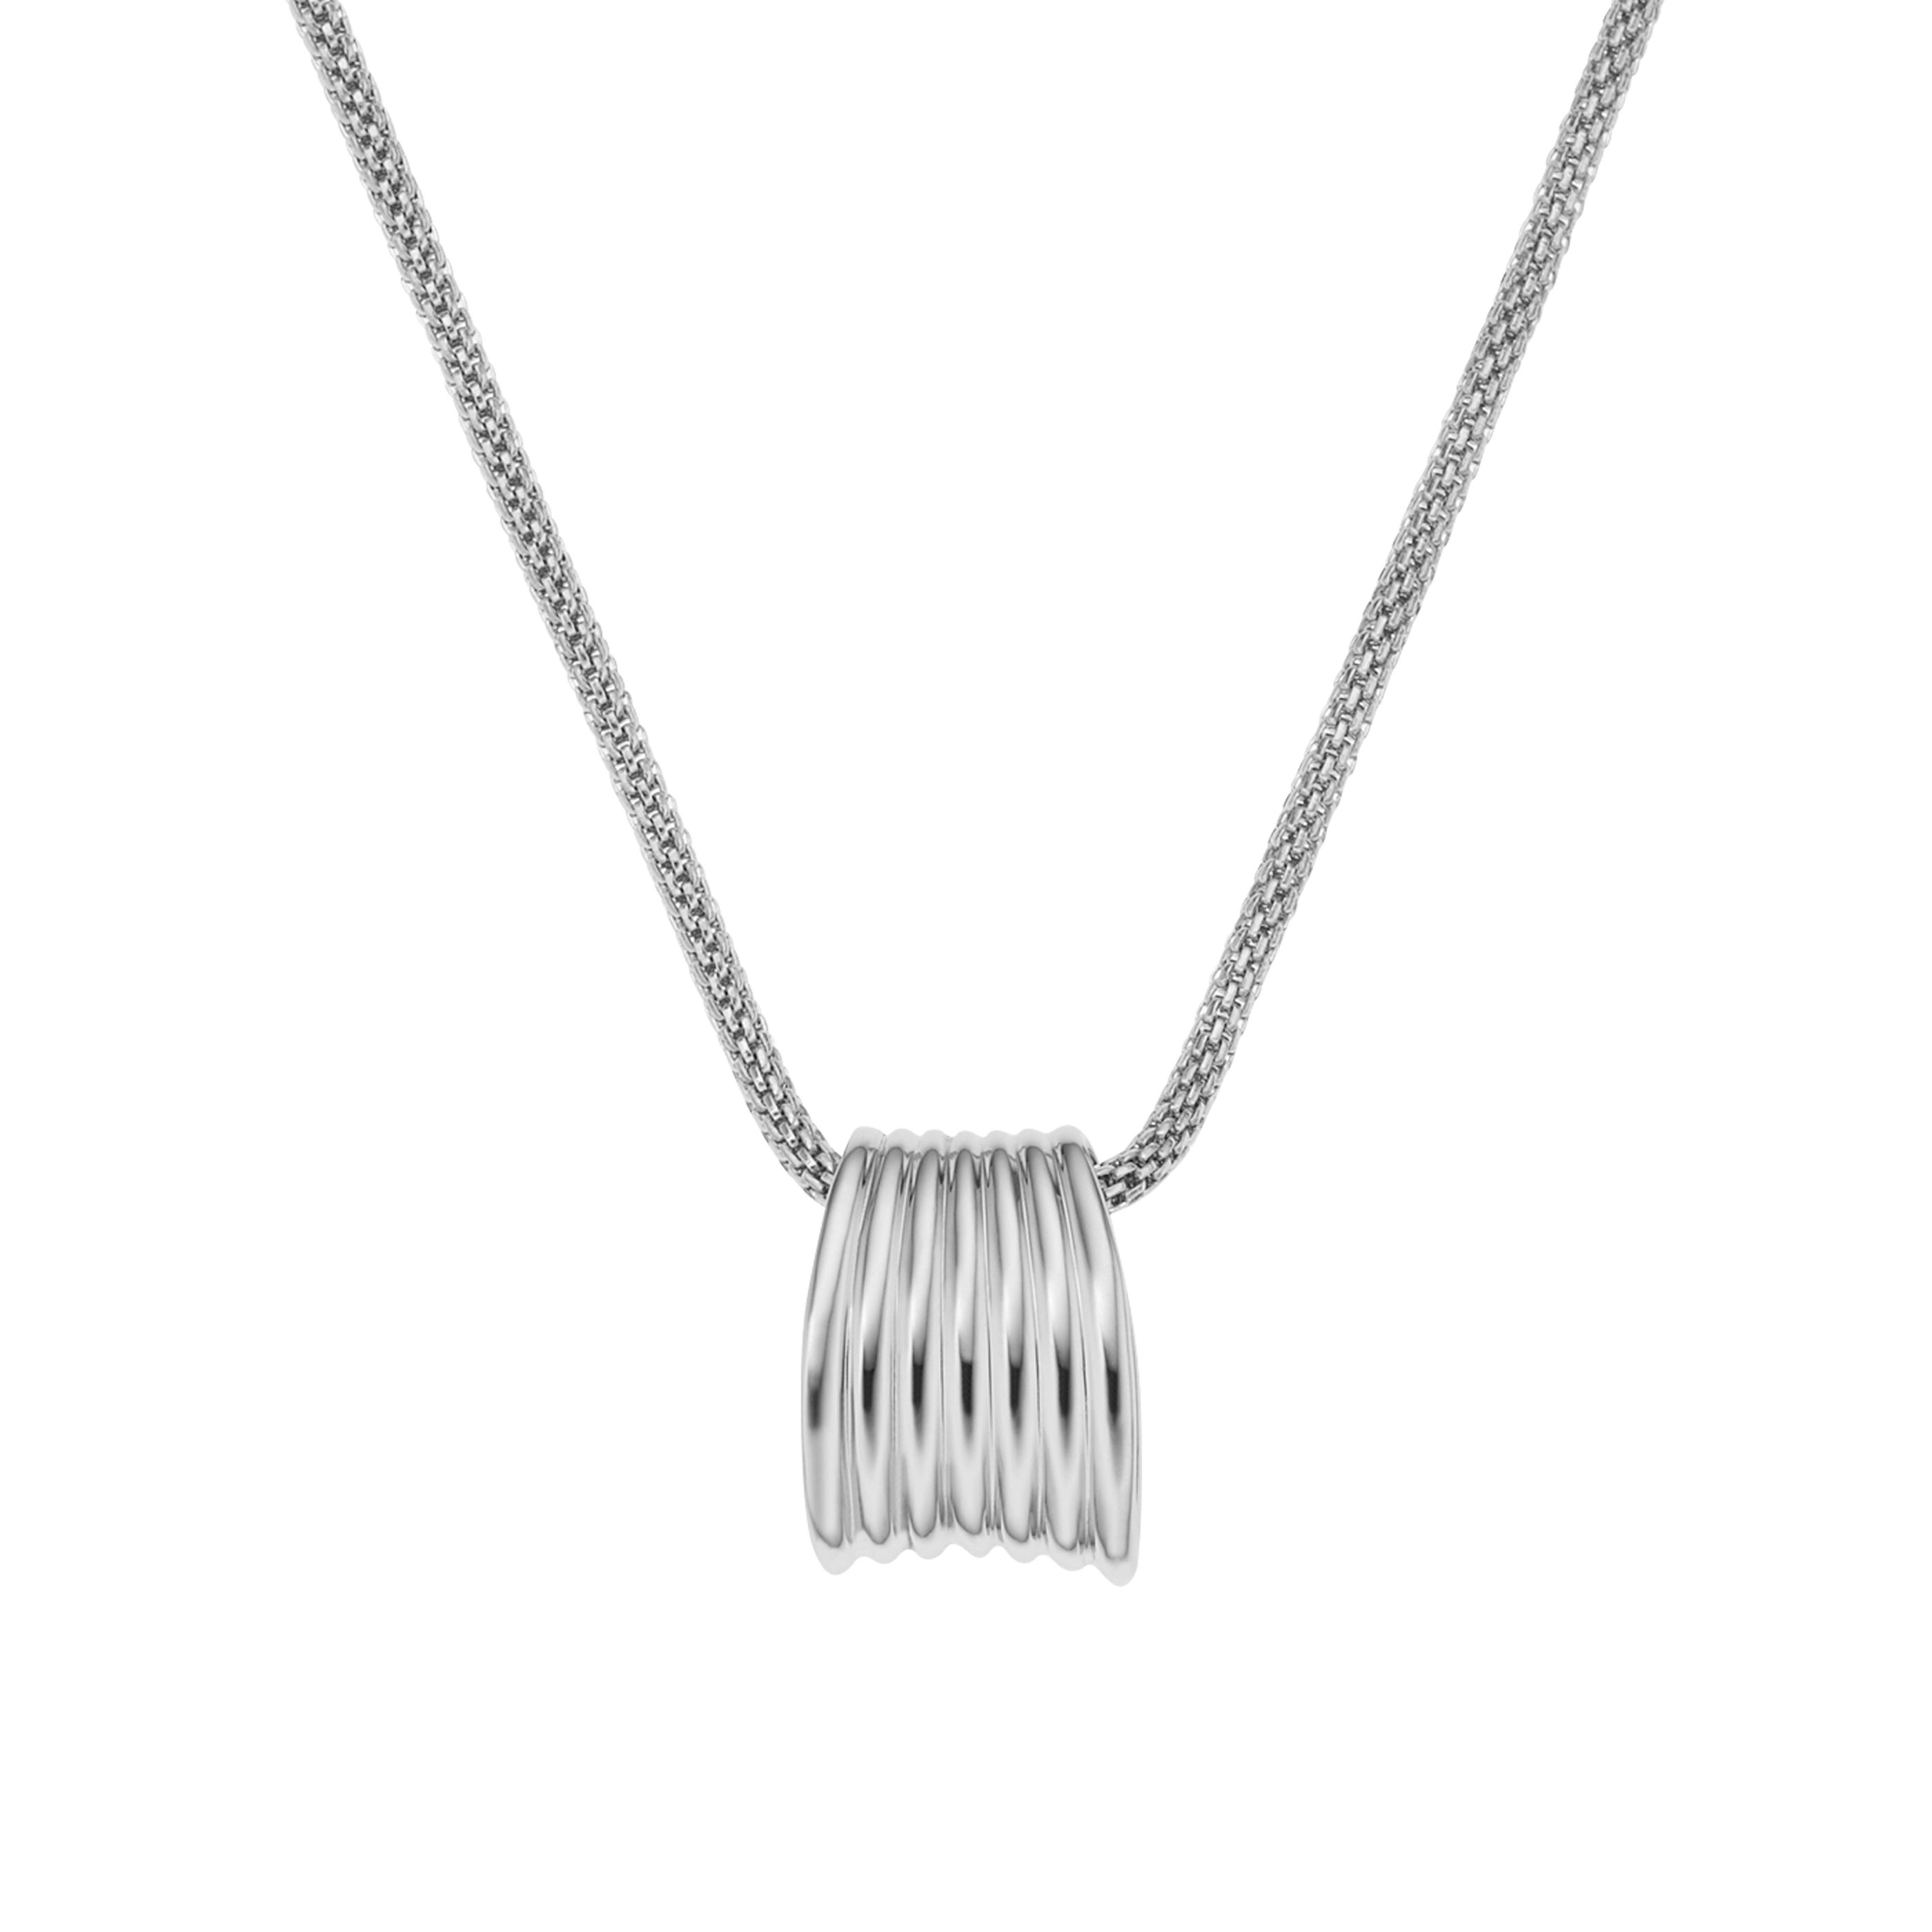 Classic silver steel necklace